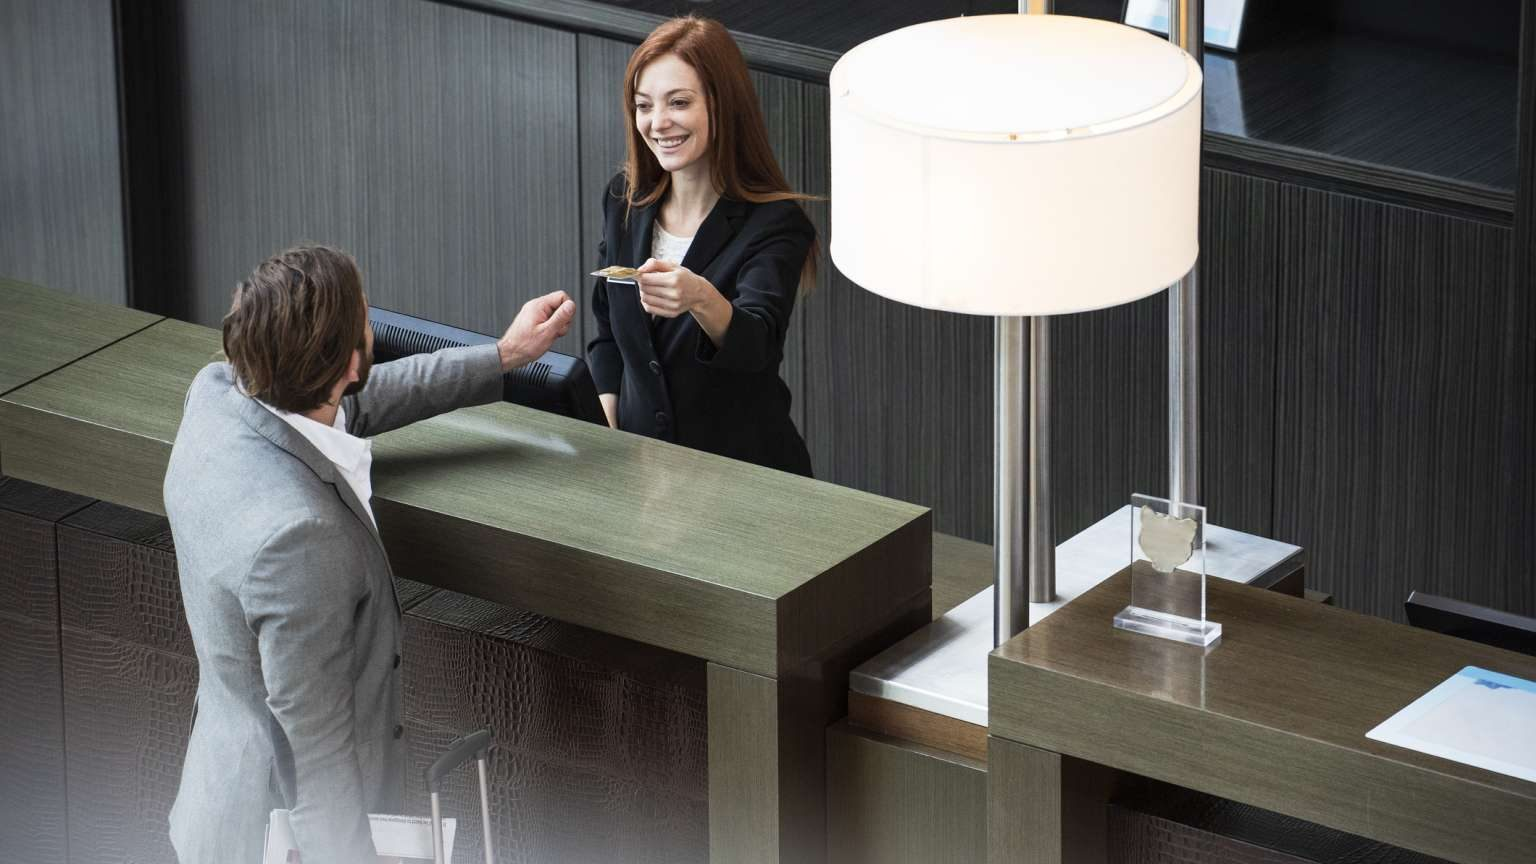 Smiling female receptionist giving credit card to businessman while standing at hotel reception